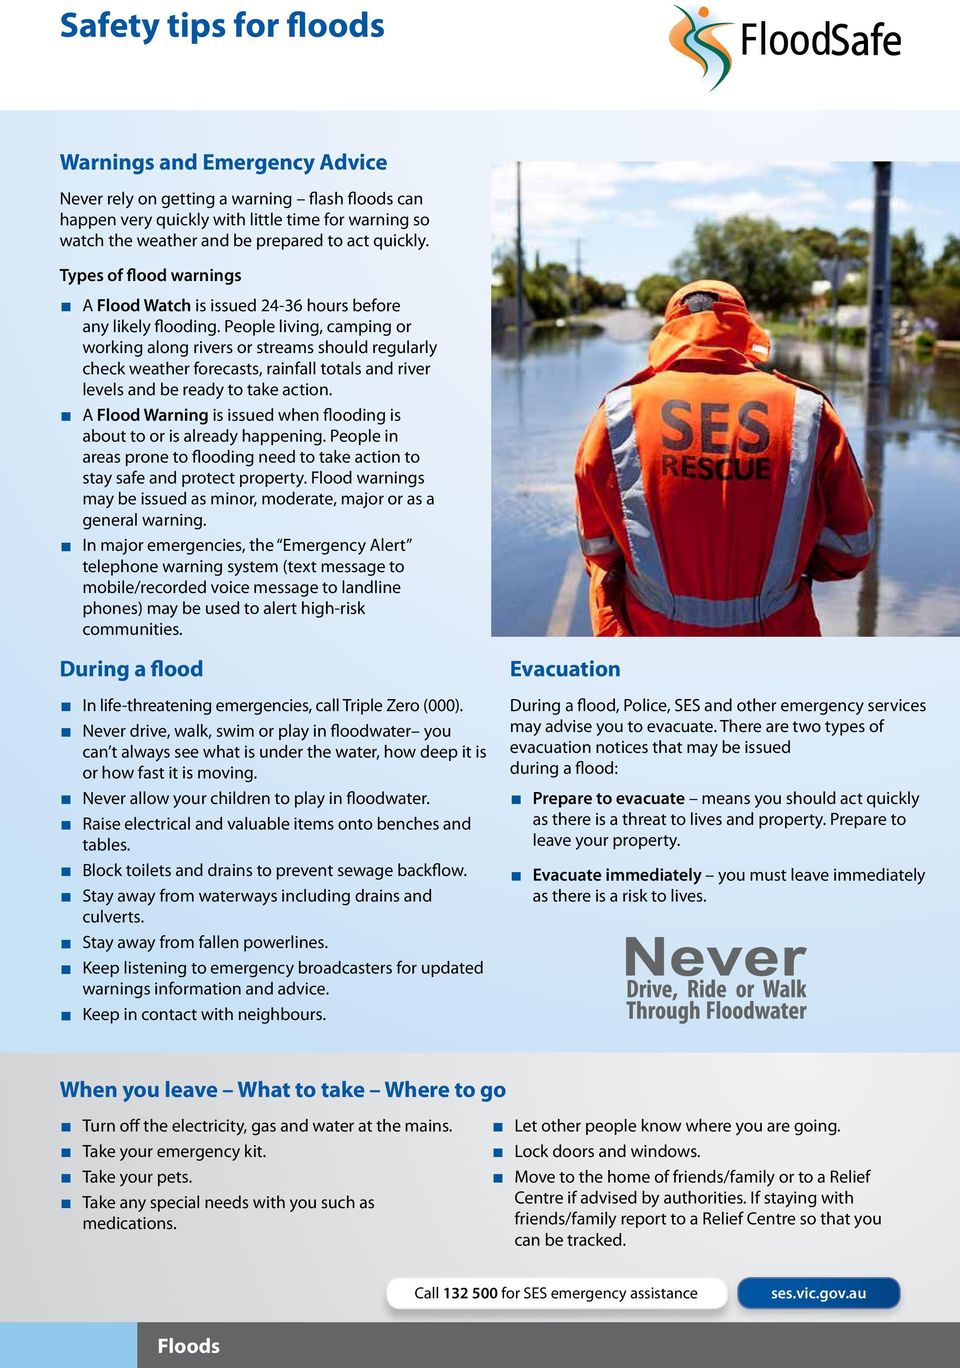 People living, camping or working along rivers or streams should regularly check weather forecasts, rainfall totals and river levels and be ready to take action.